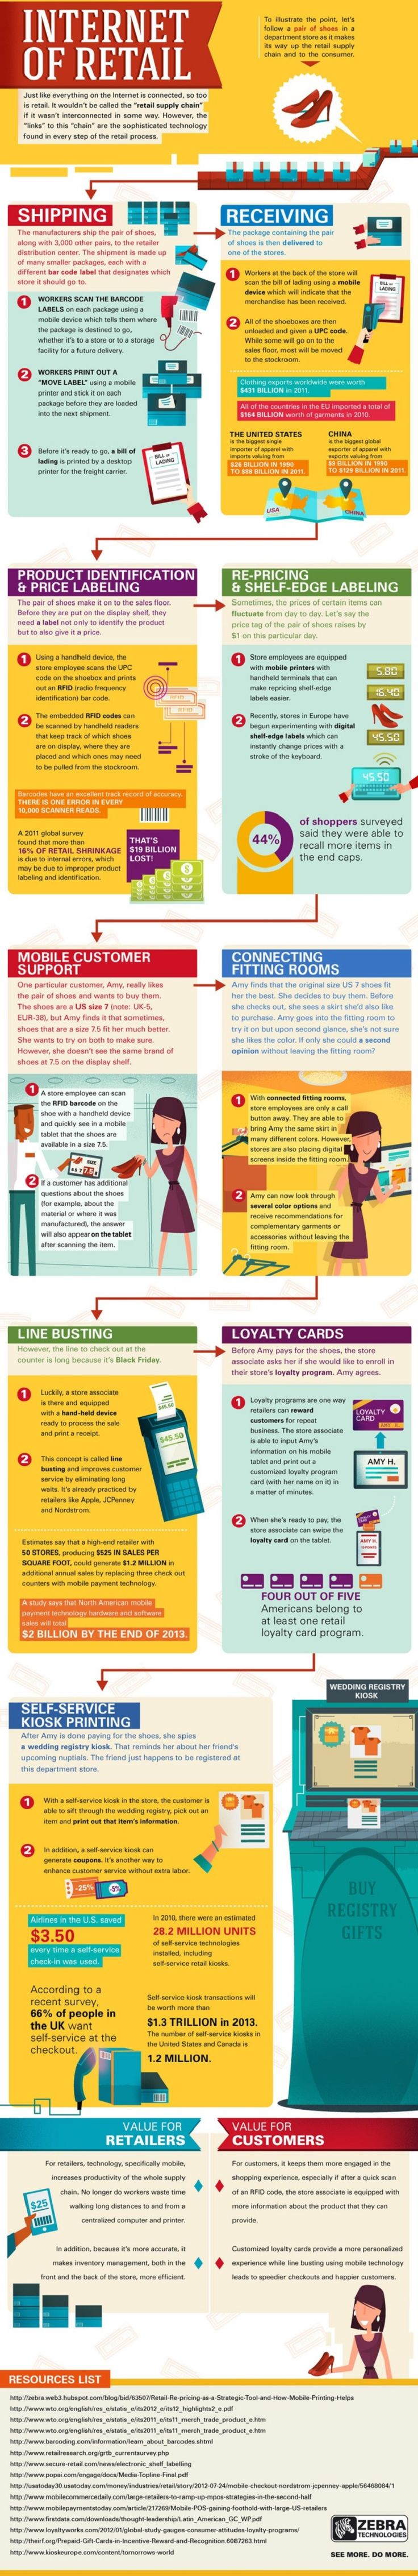 Infographic: The Internet of Retail - Digitizing the Retail Supply Chain - Total Customer